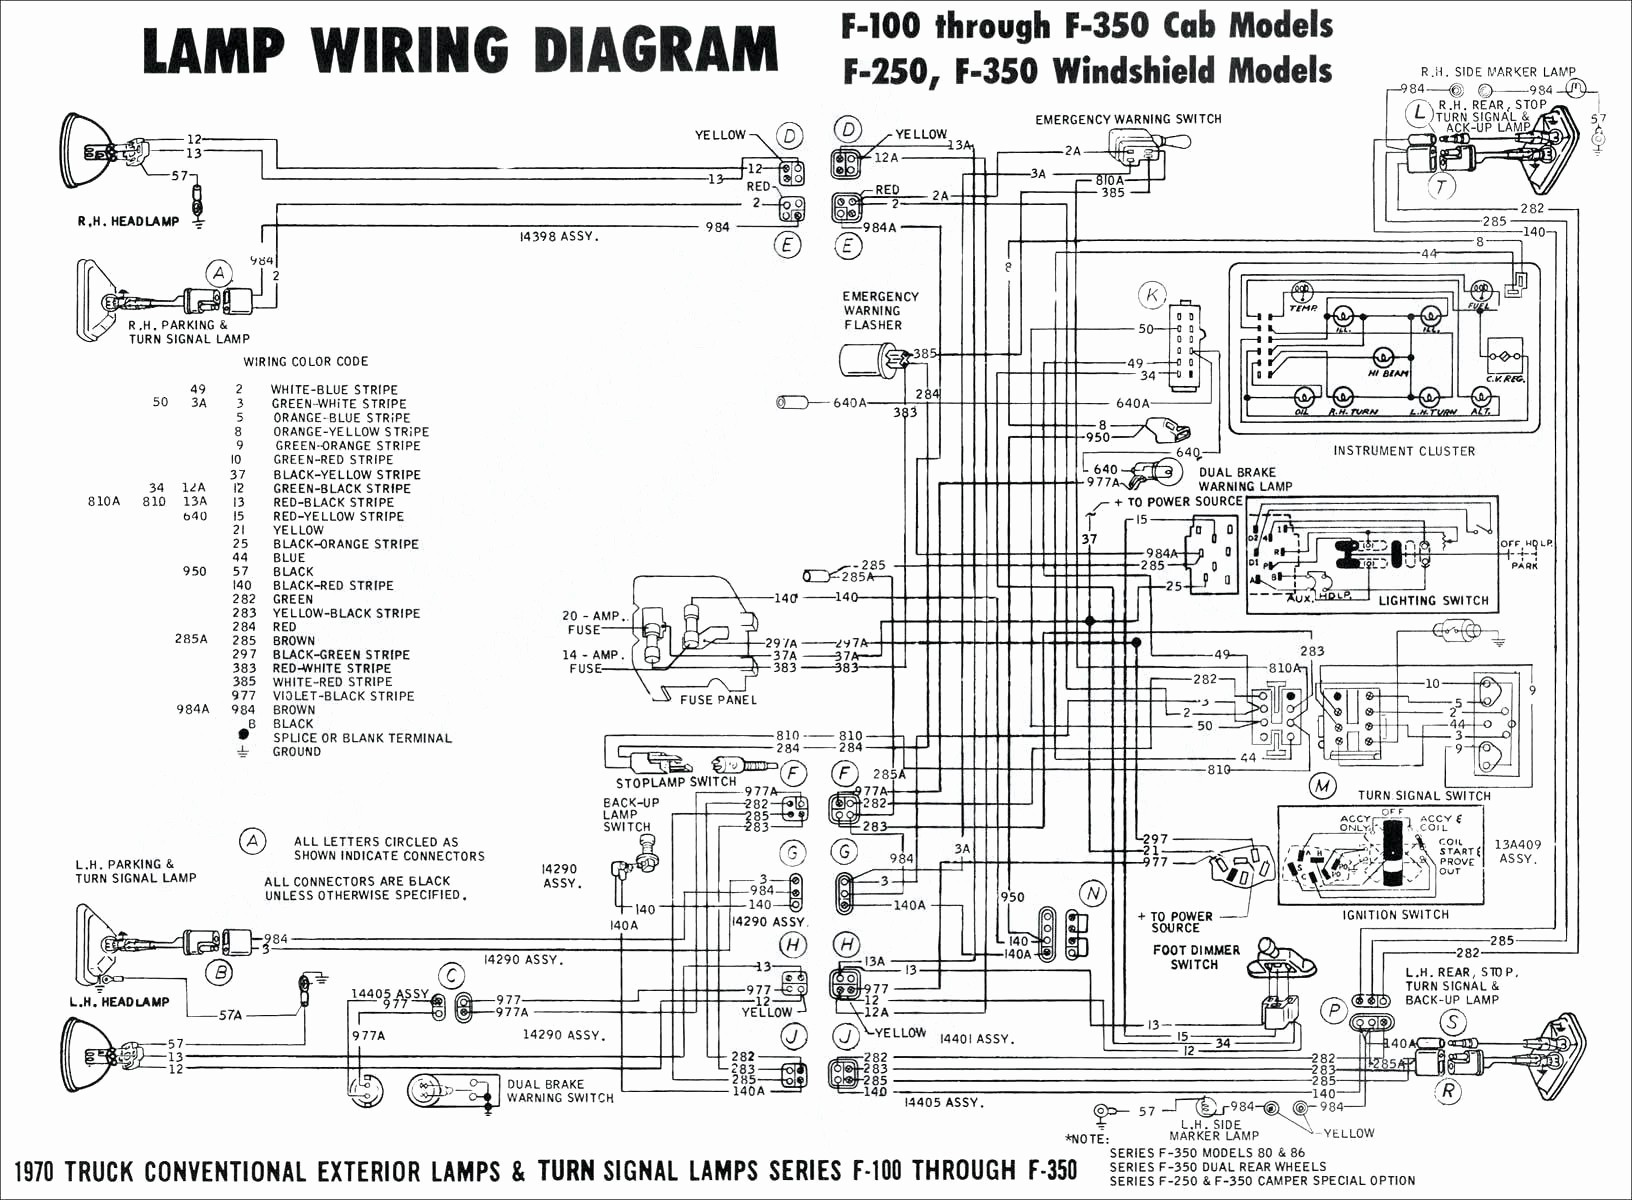 2003 Cadillac Cts Engine Diagram 2003 Cadillac Cts